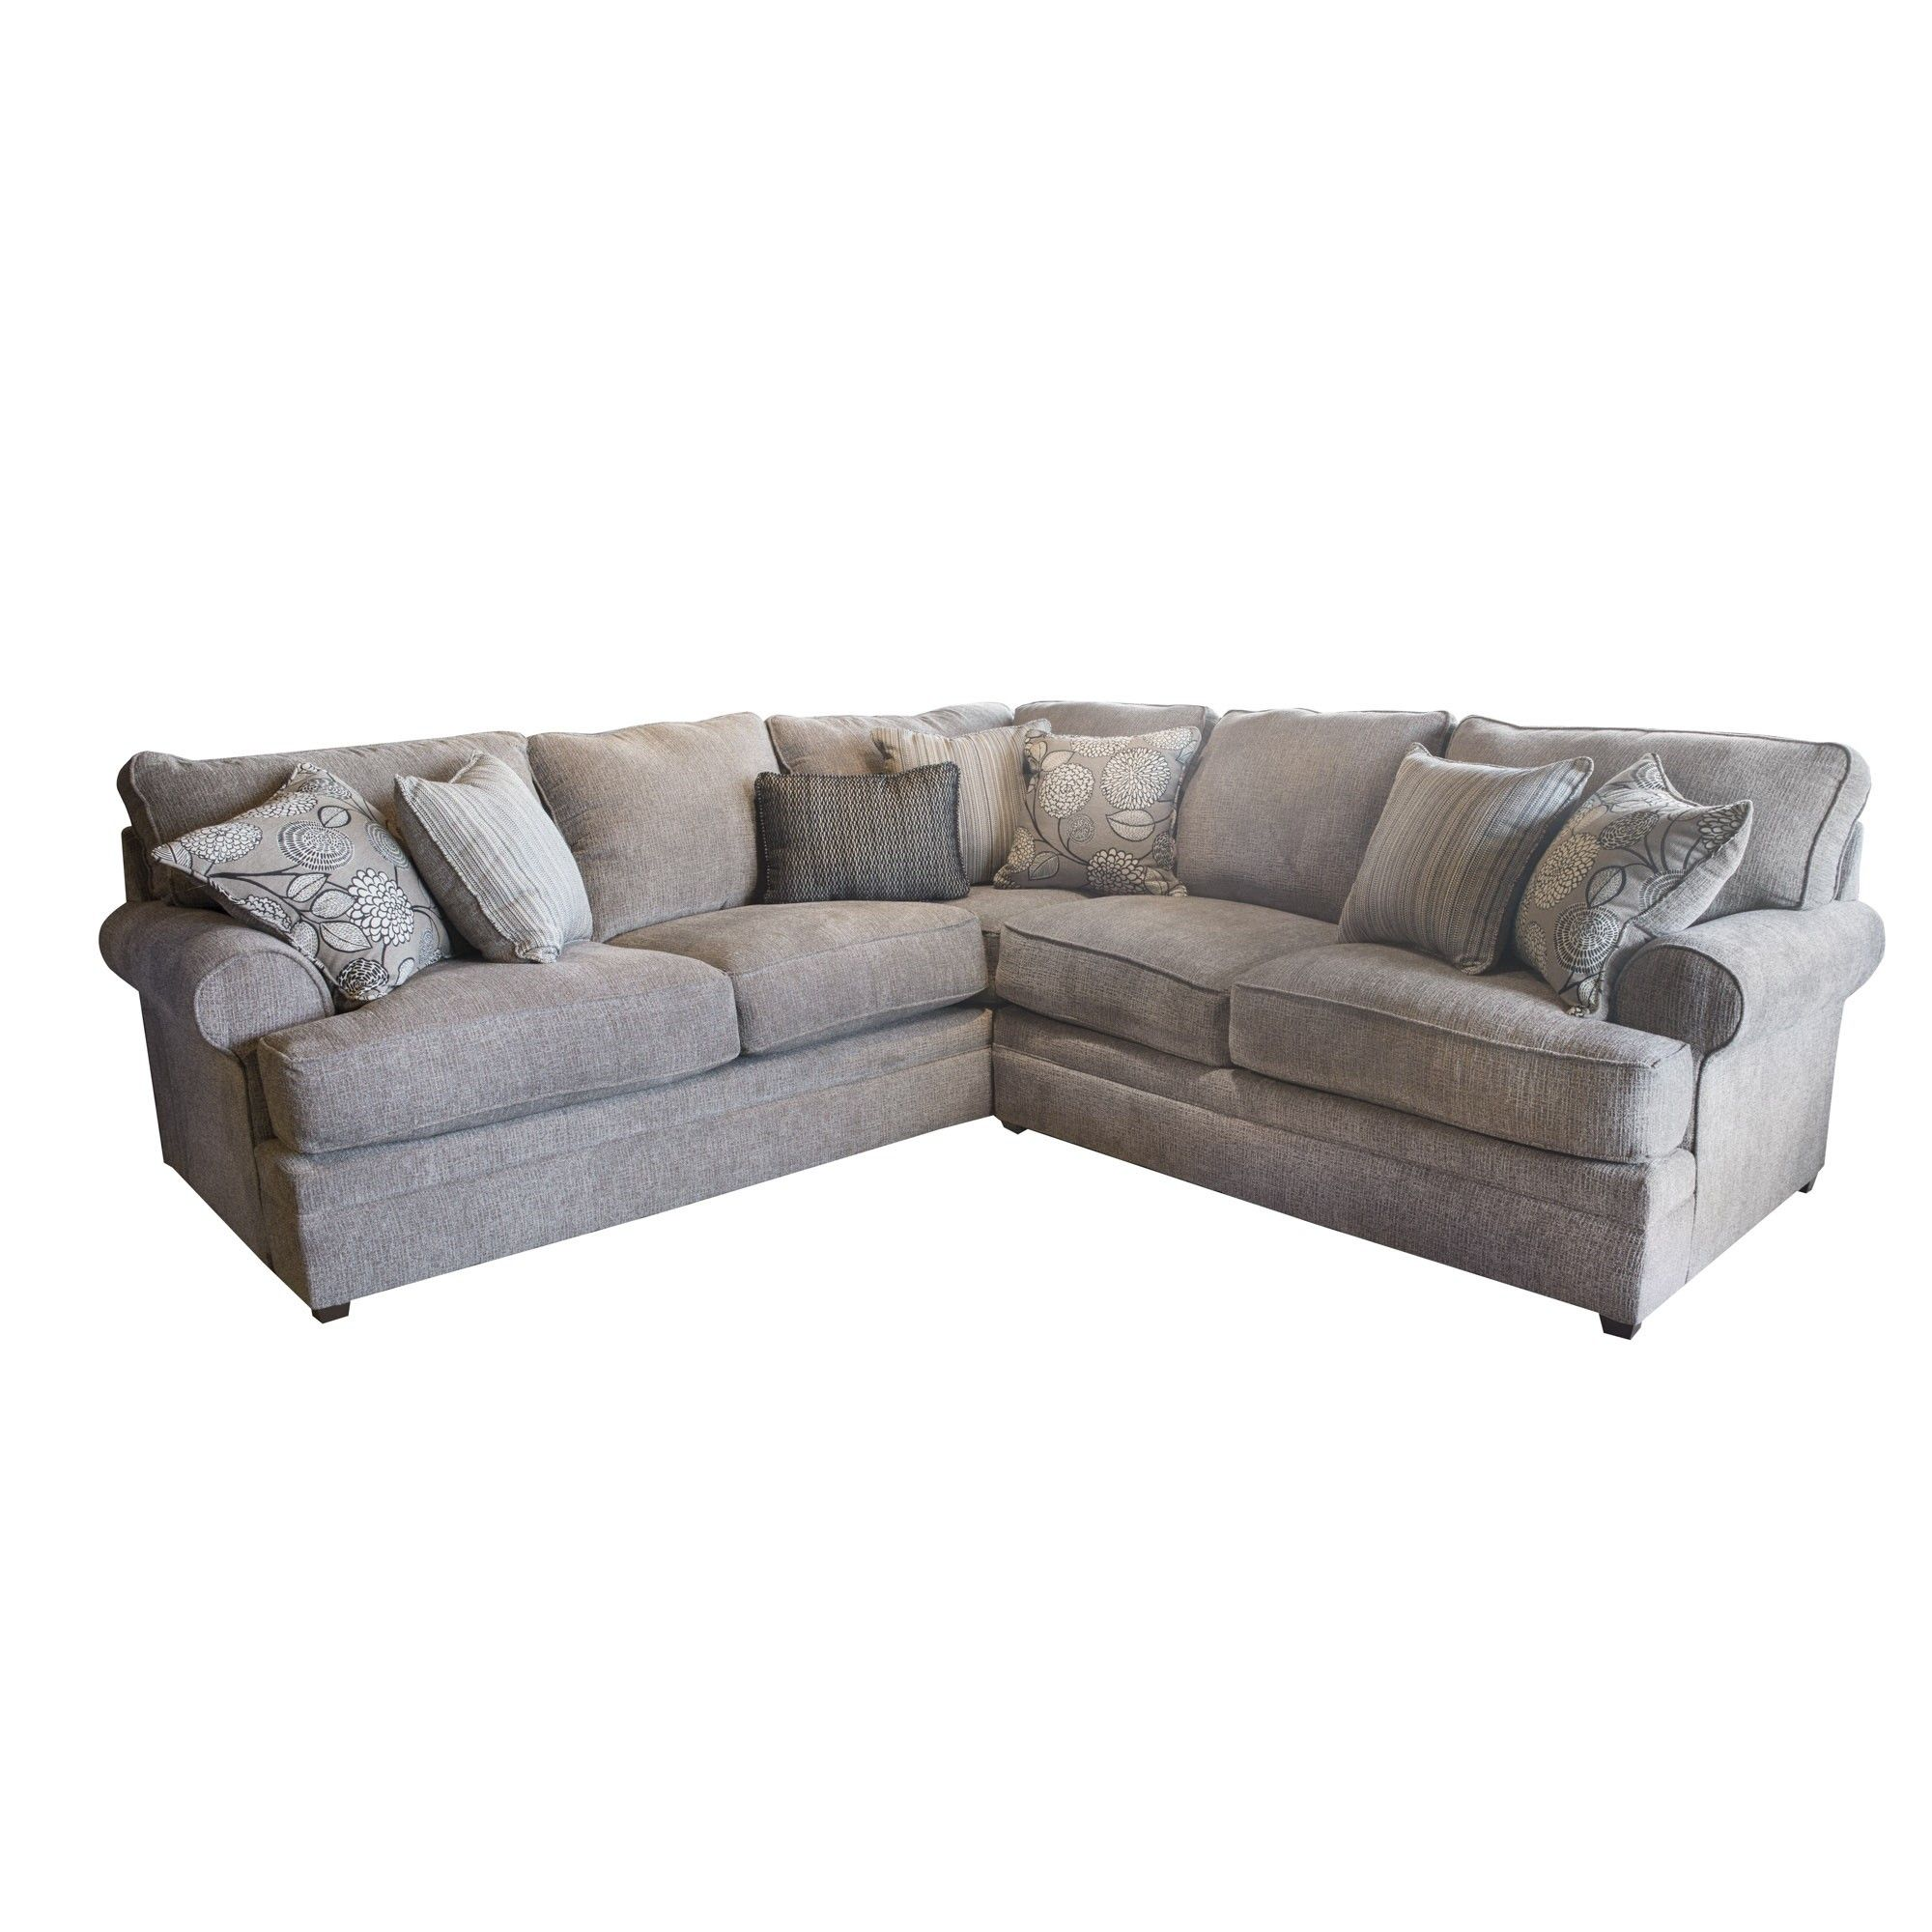 Macey 2 Piece Sectional | Furniture | Pinterest | Living rooms ...